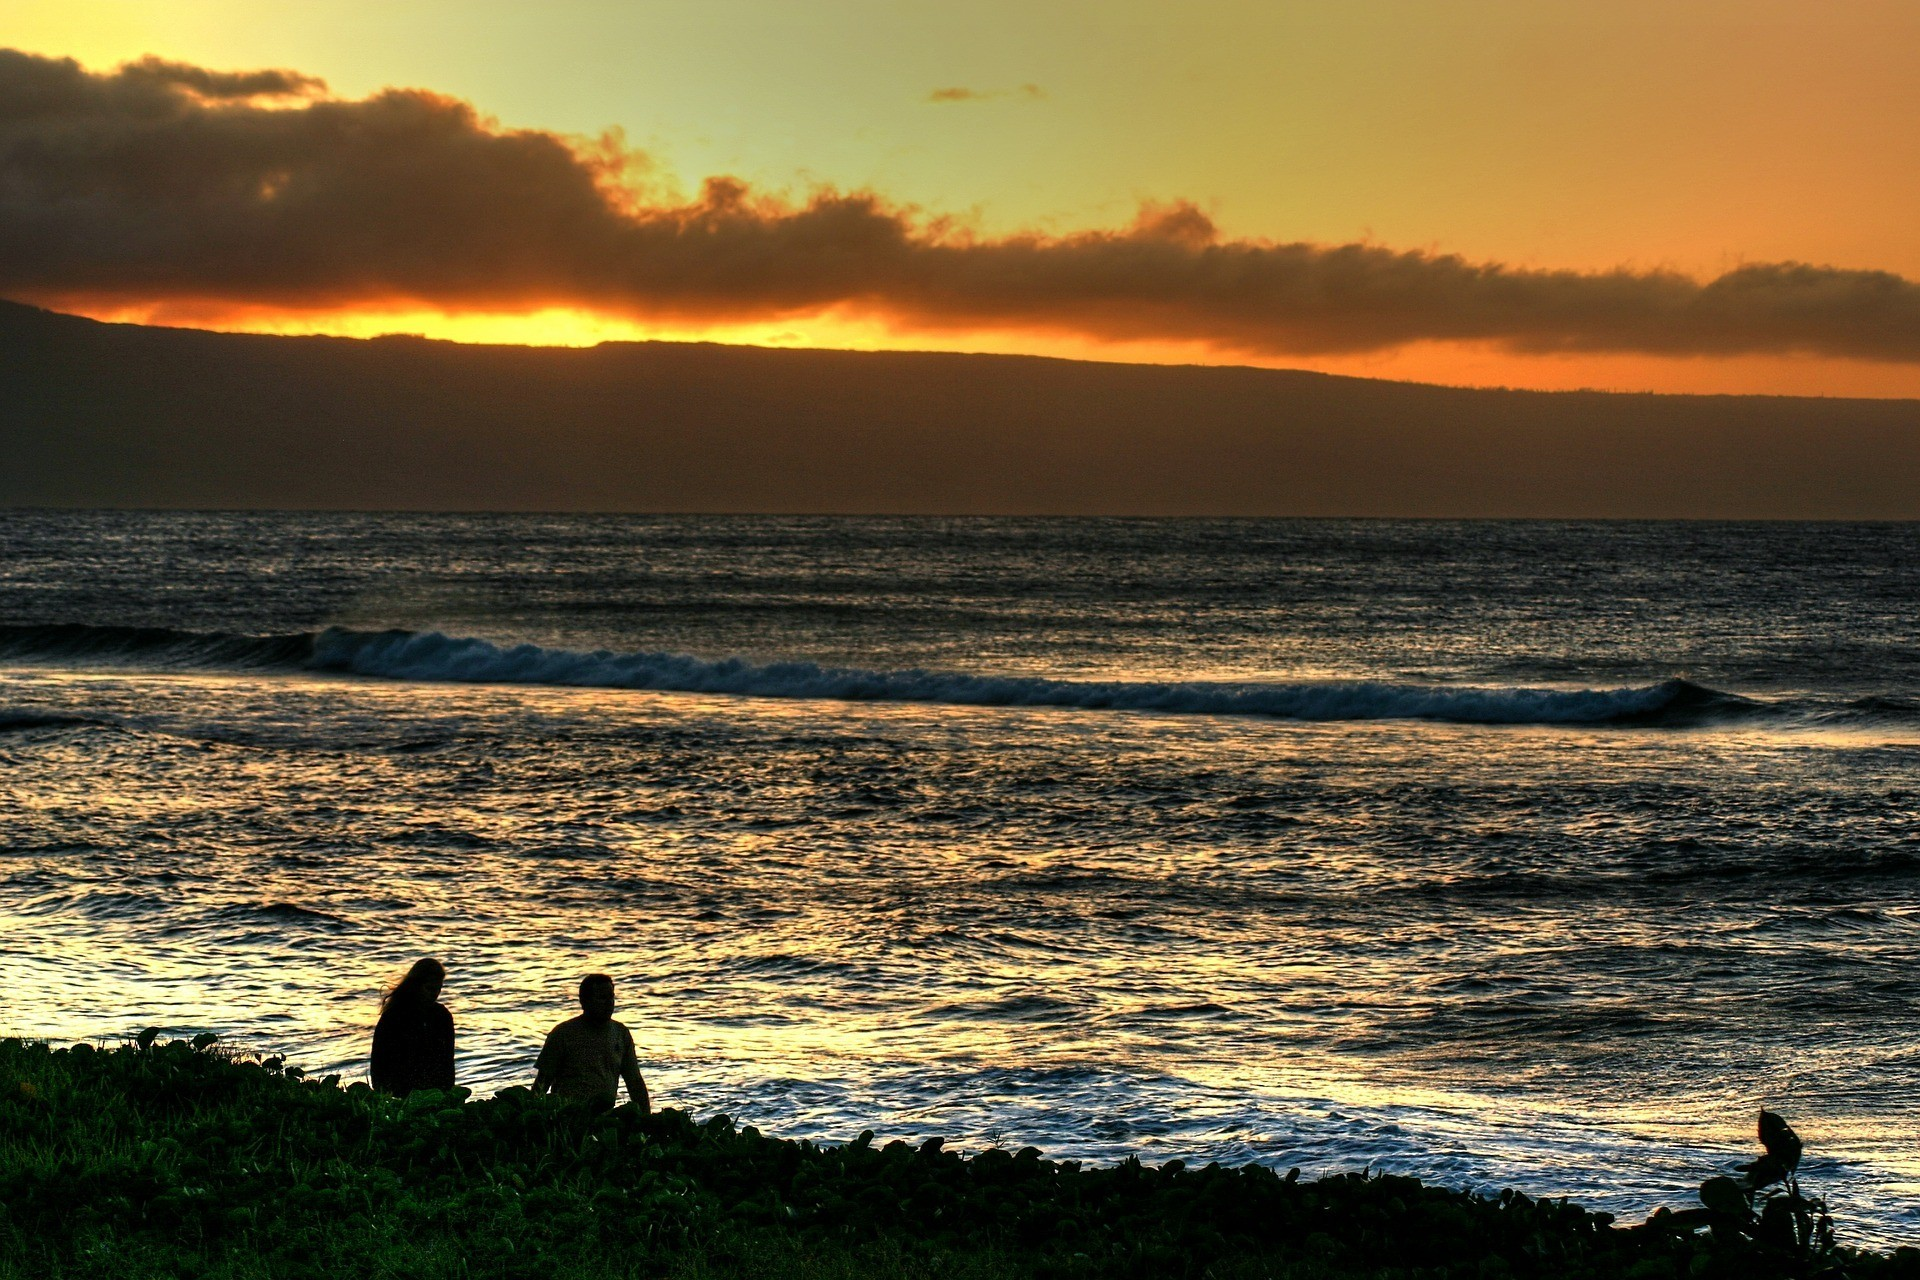 Sunset and beach at Kaanapali - Best Area to Stay in Maui with a Family